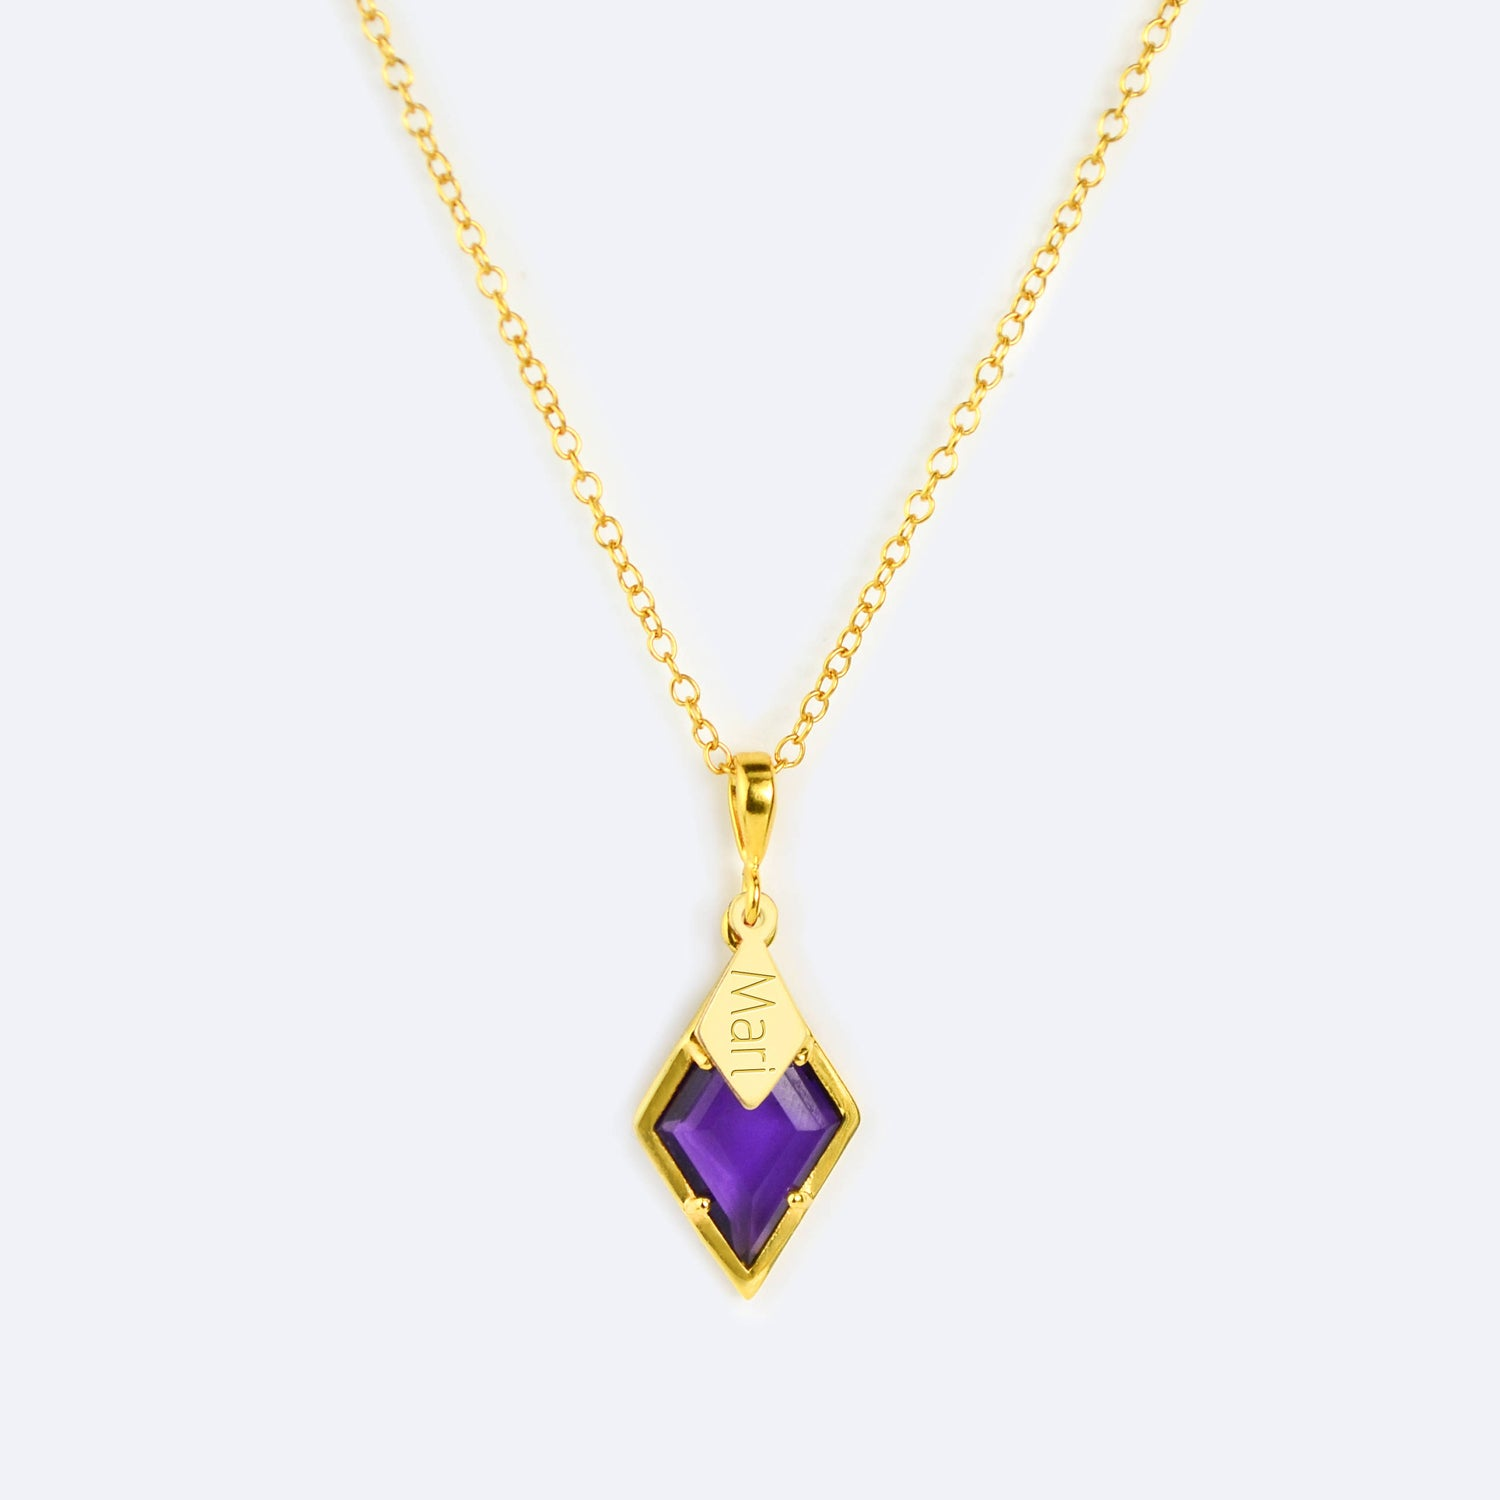 en diamond pendant tw mv gold jaredstore purple jared jar ct round white cut zm necklace